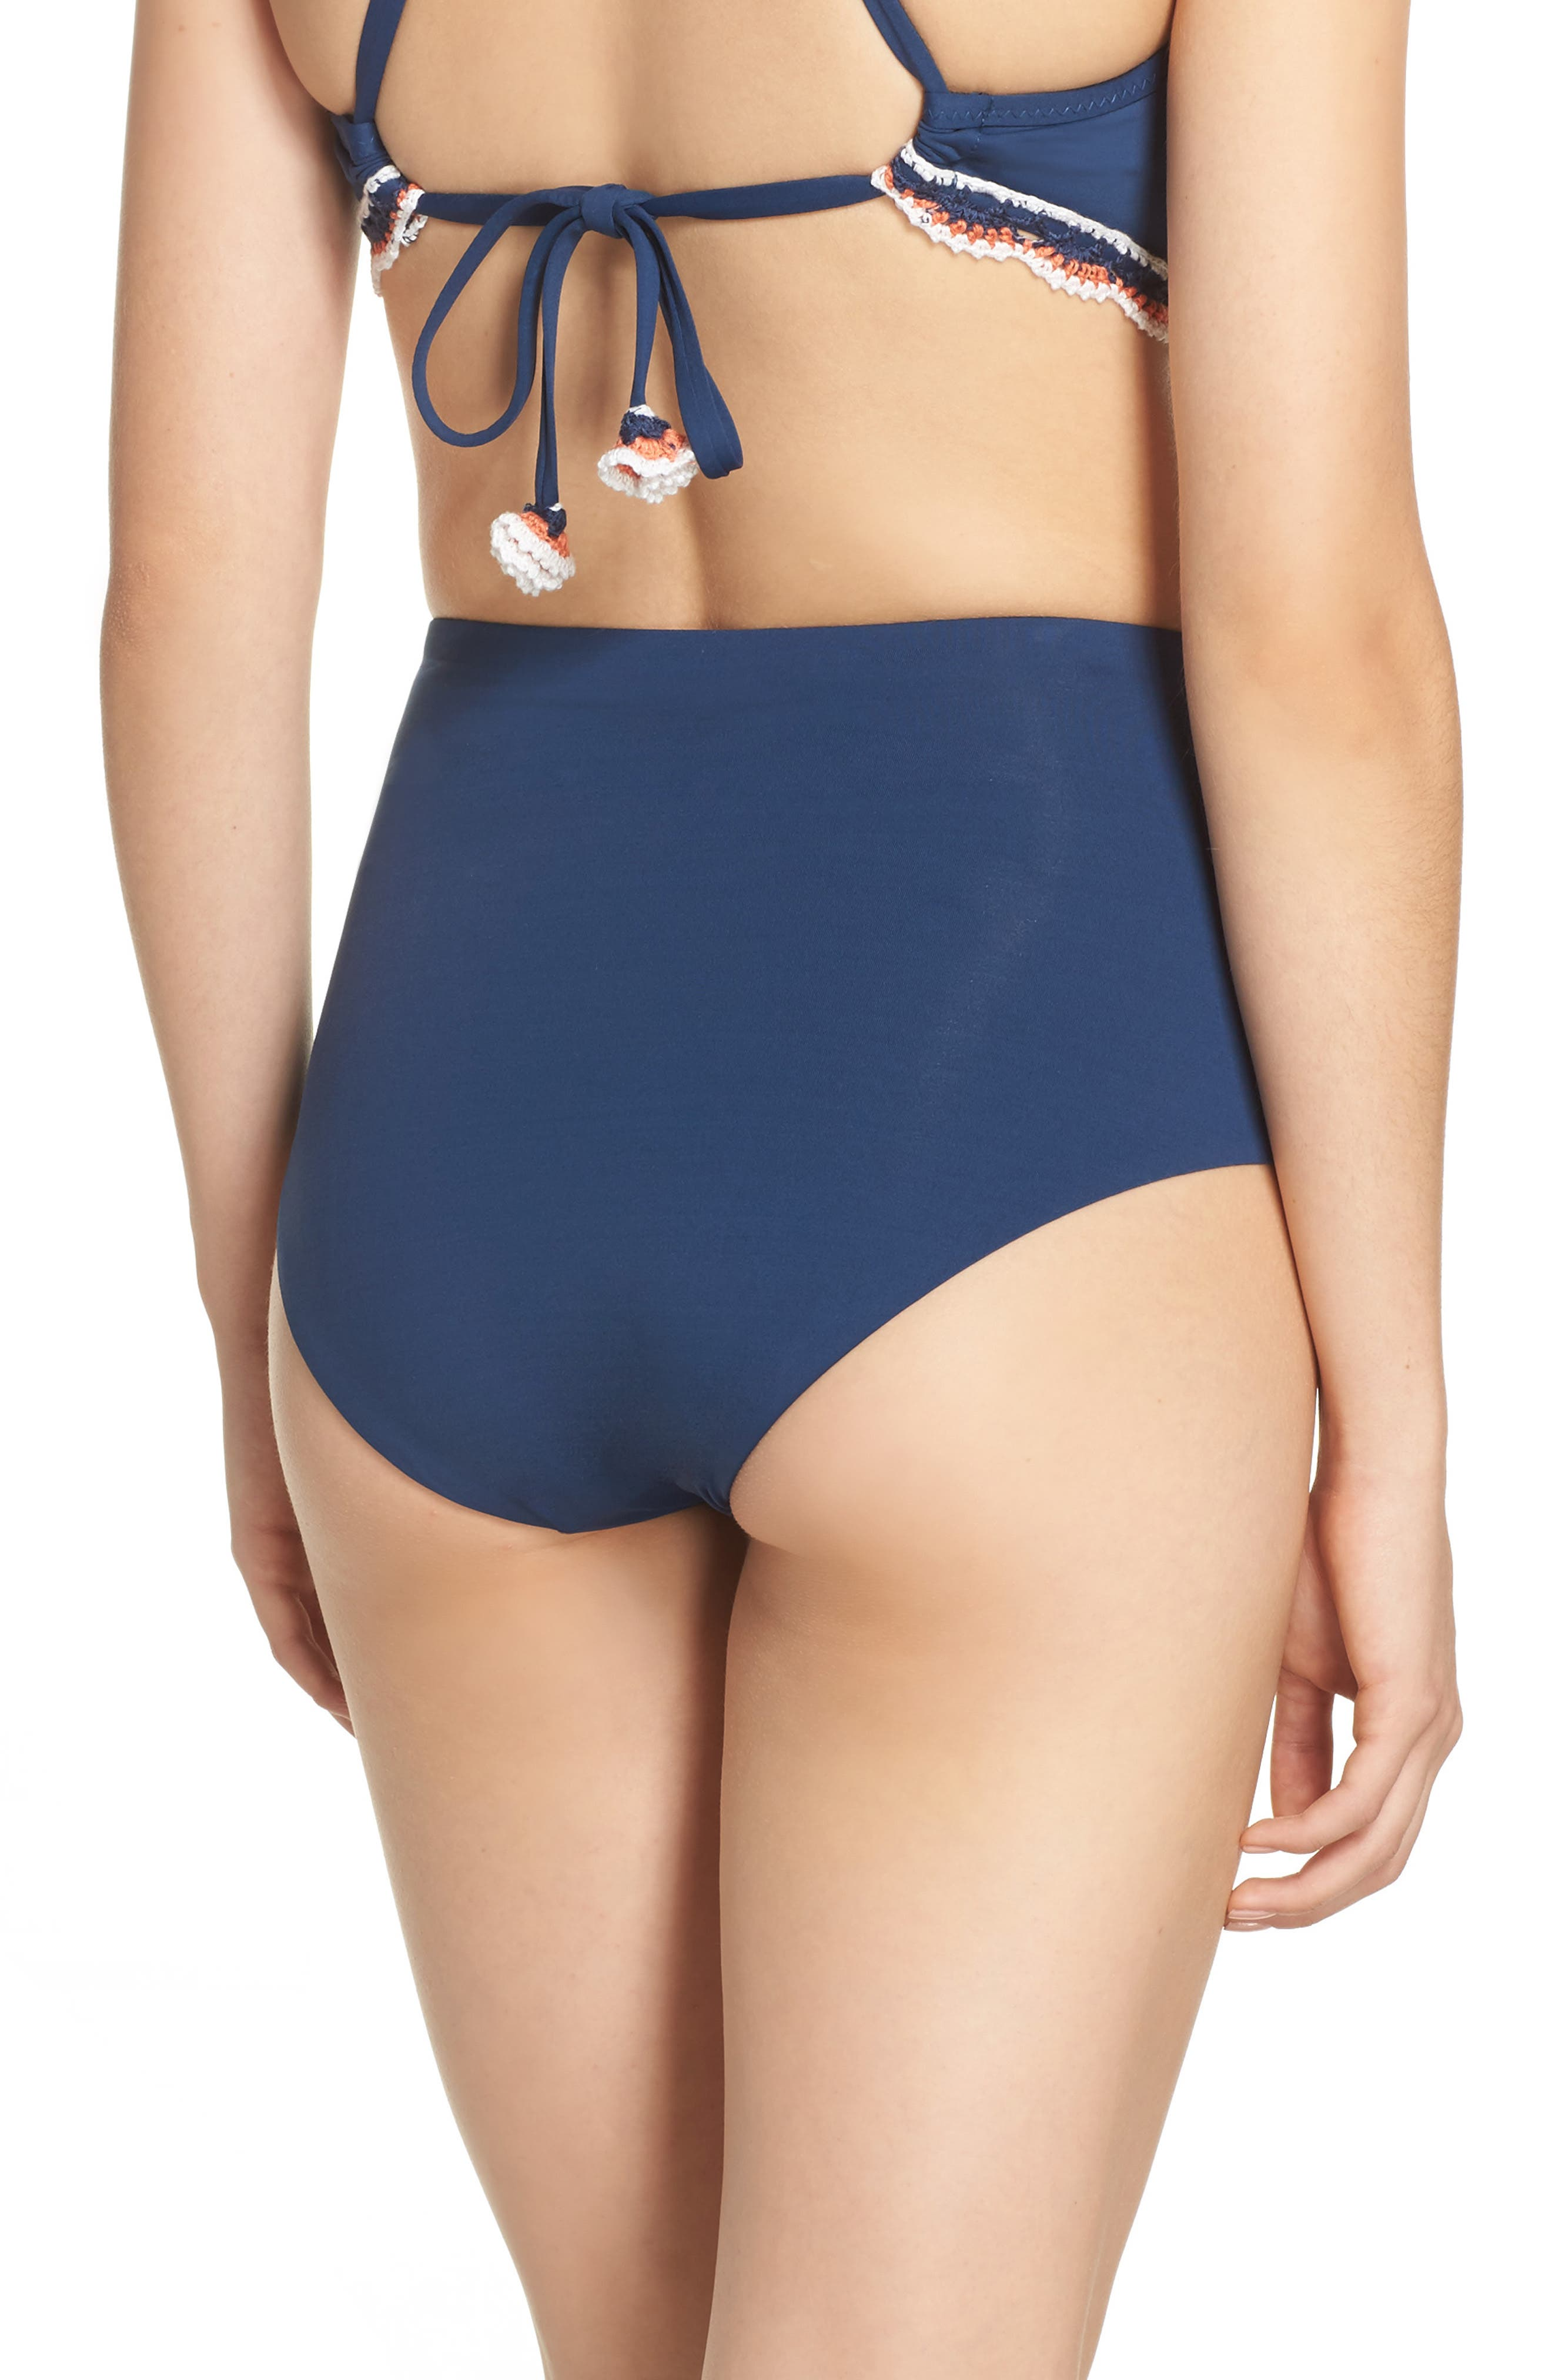 Medina High Waist Bikini Bottoms,                             Alternate thumbnail 2, color,                             Indigo